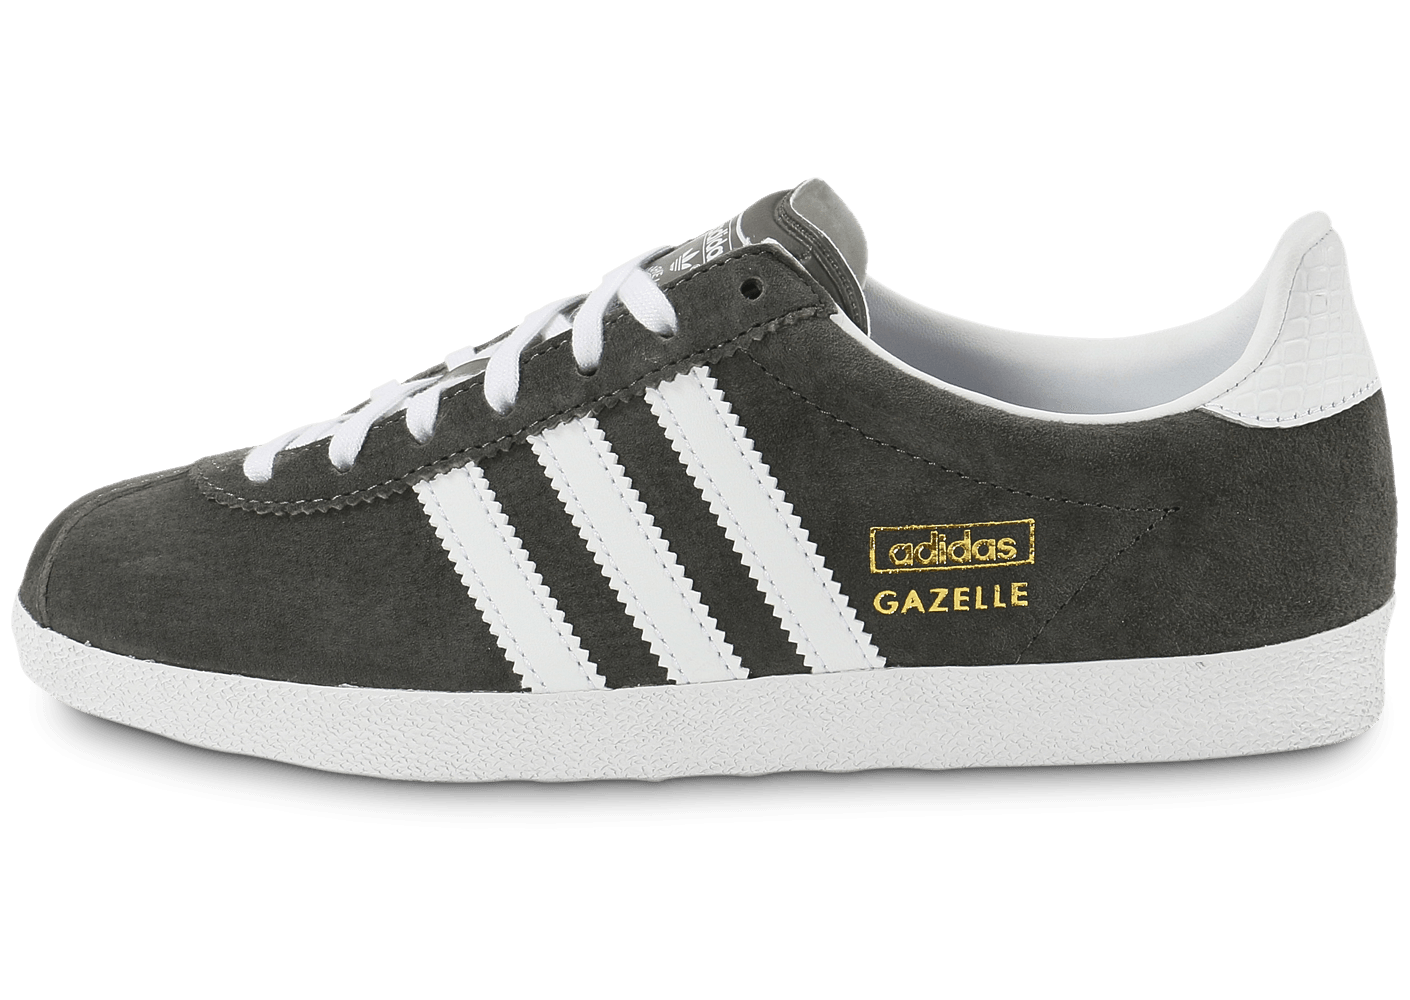 chaussures adidas gazelle femme pas cher. Black Bedroom Furniture Sets. Home Design Ideas